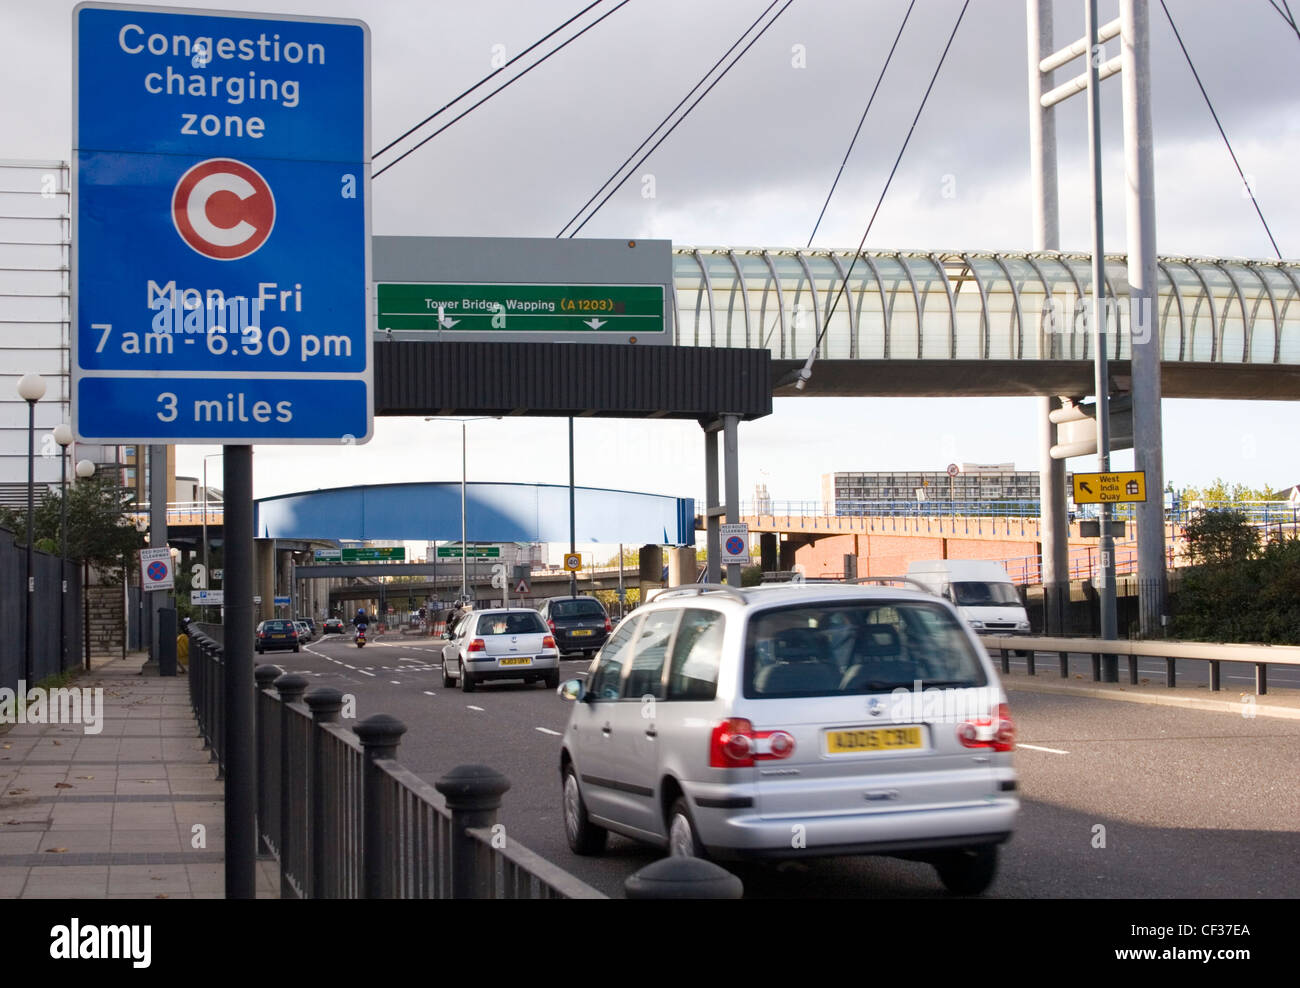 Congestion Charge sign by the Limehouse Link Tunnel. - Stock Image